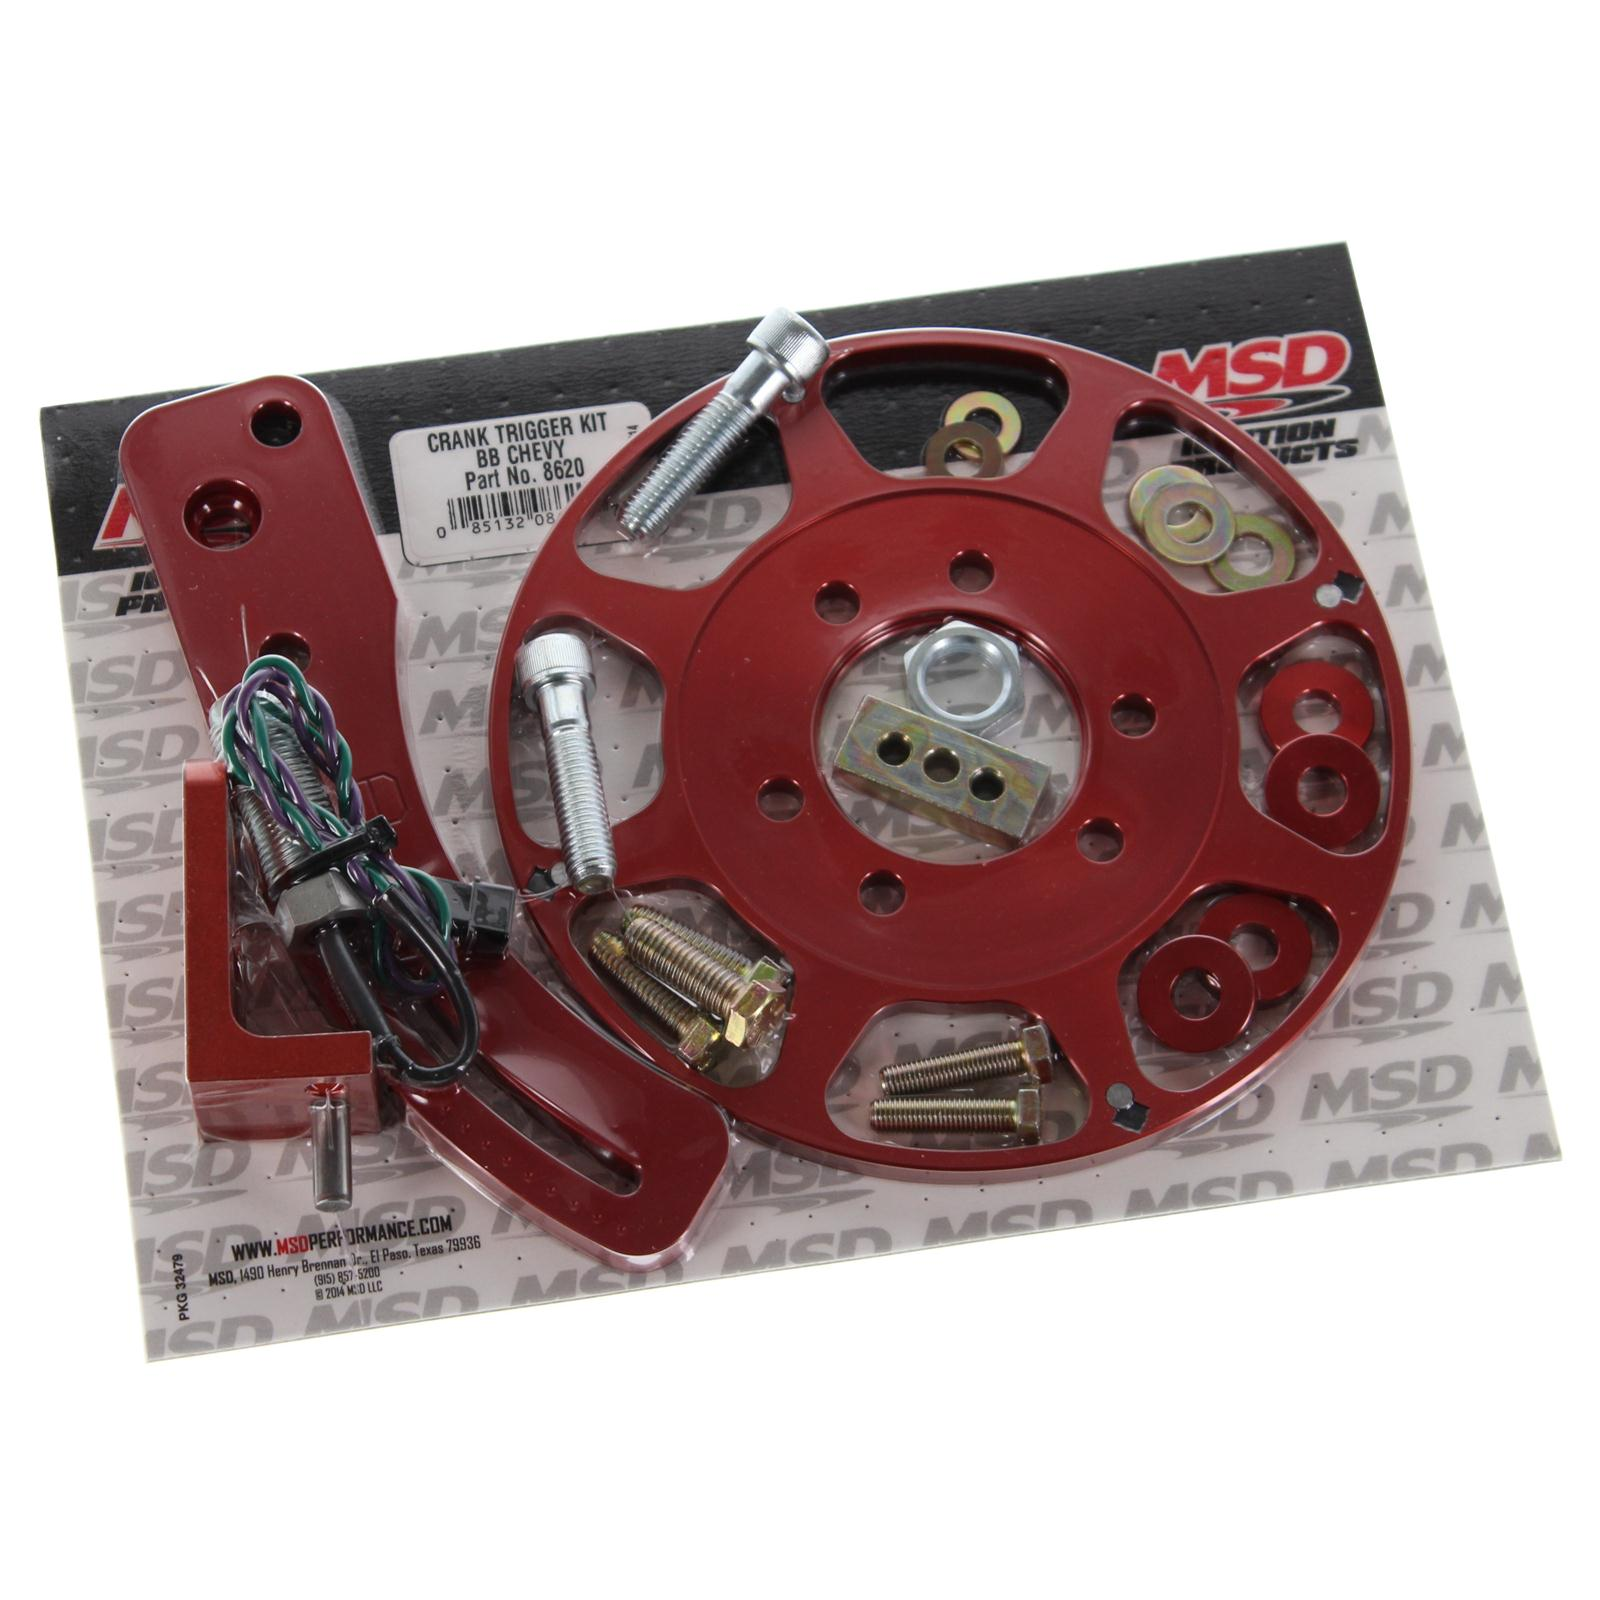 Msd Xl on Big Block Chevy Crank Trigger Kit